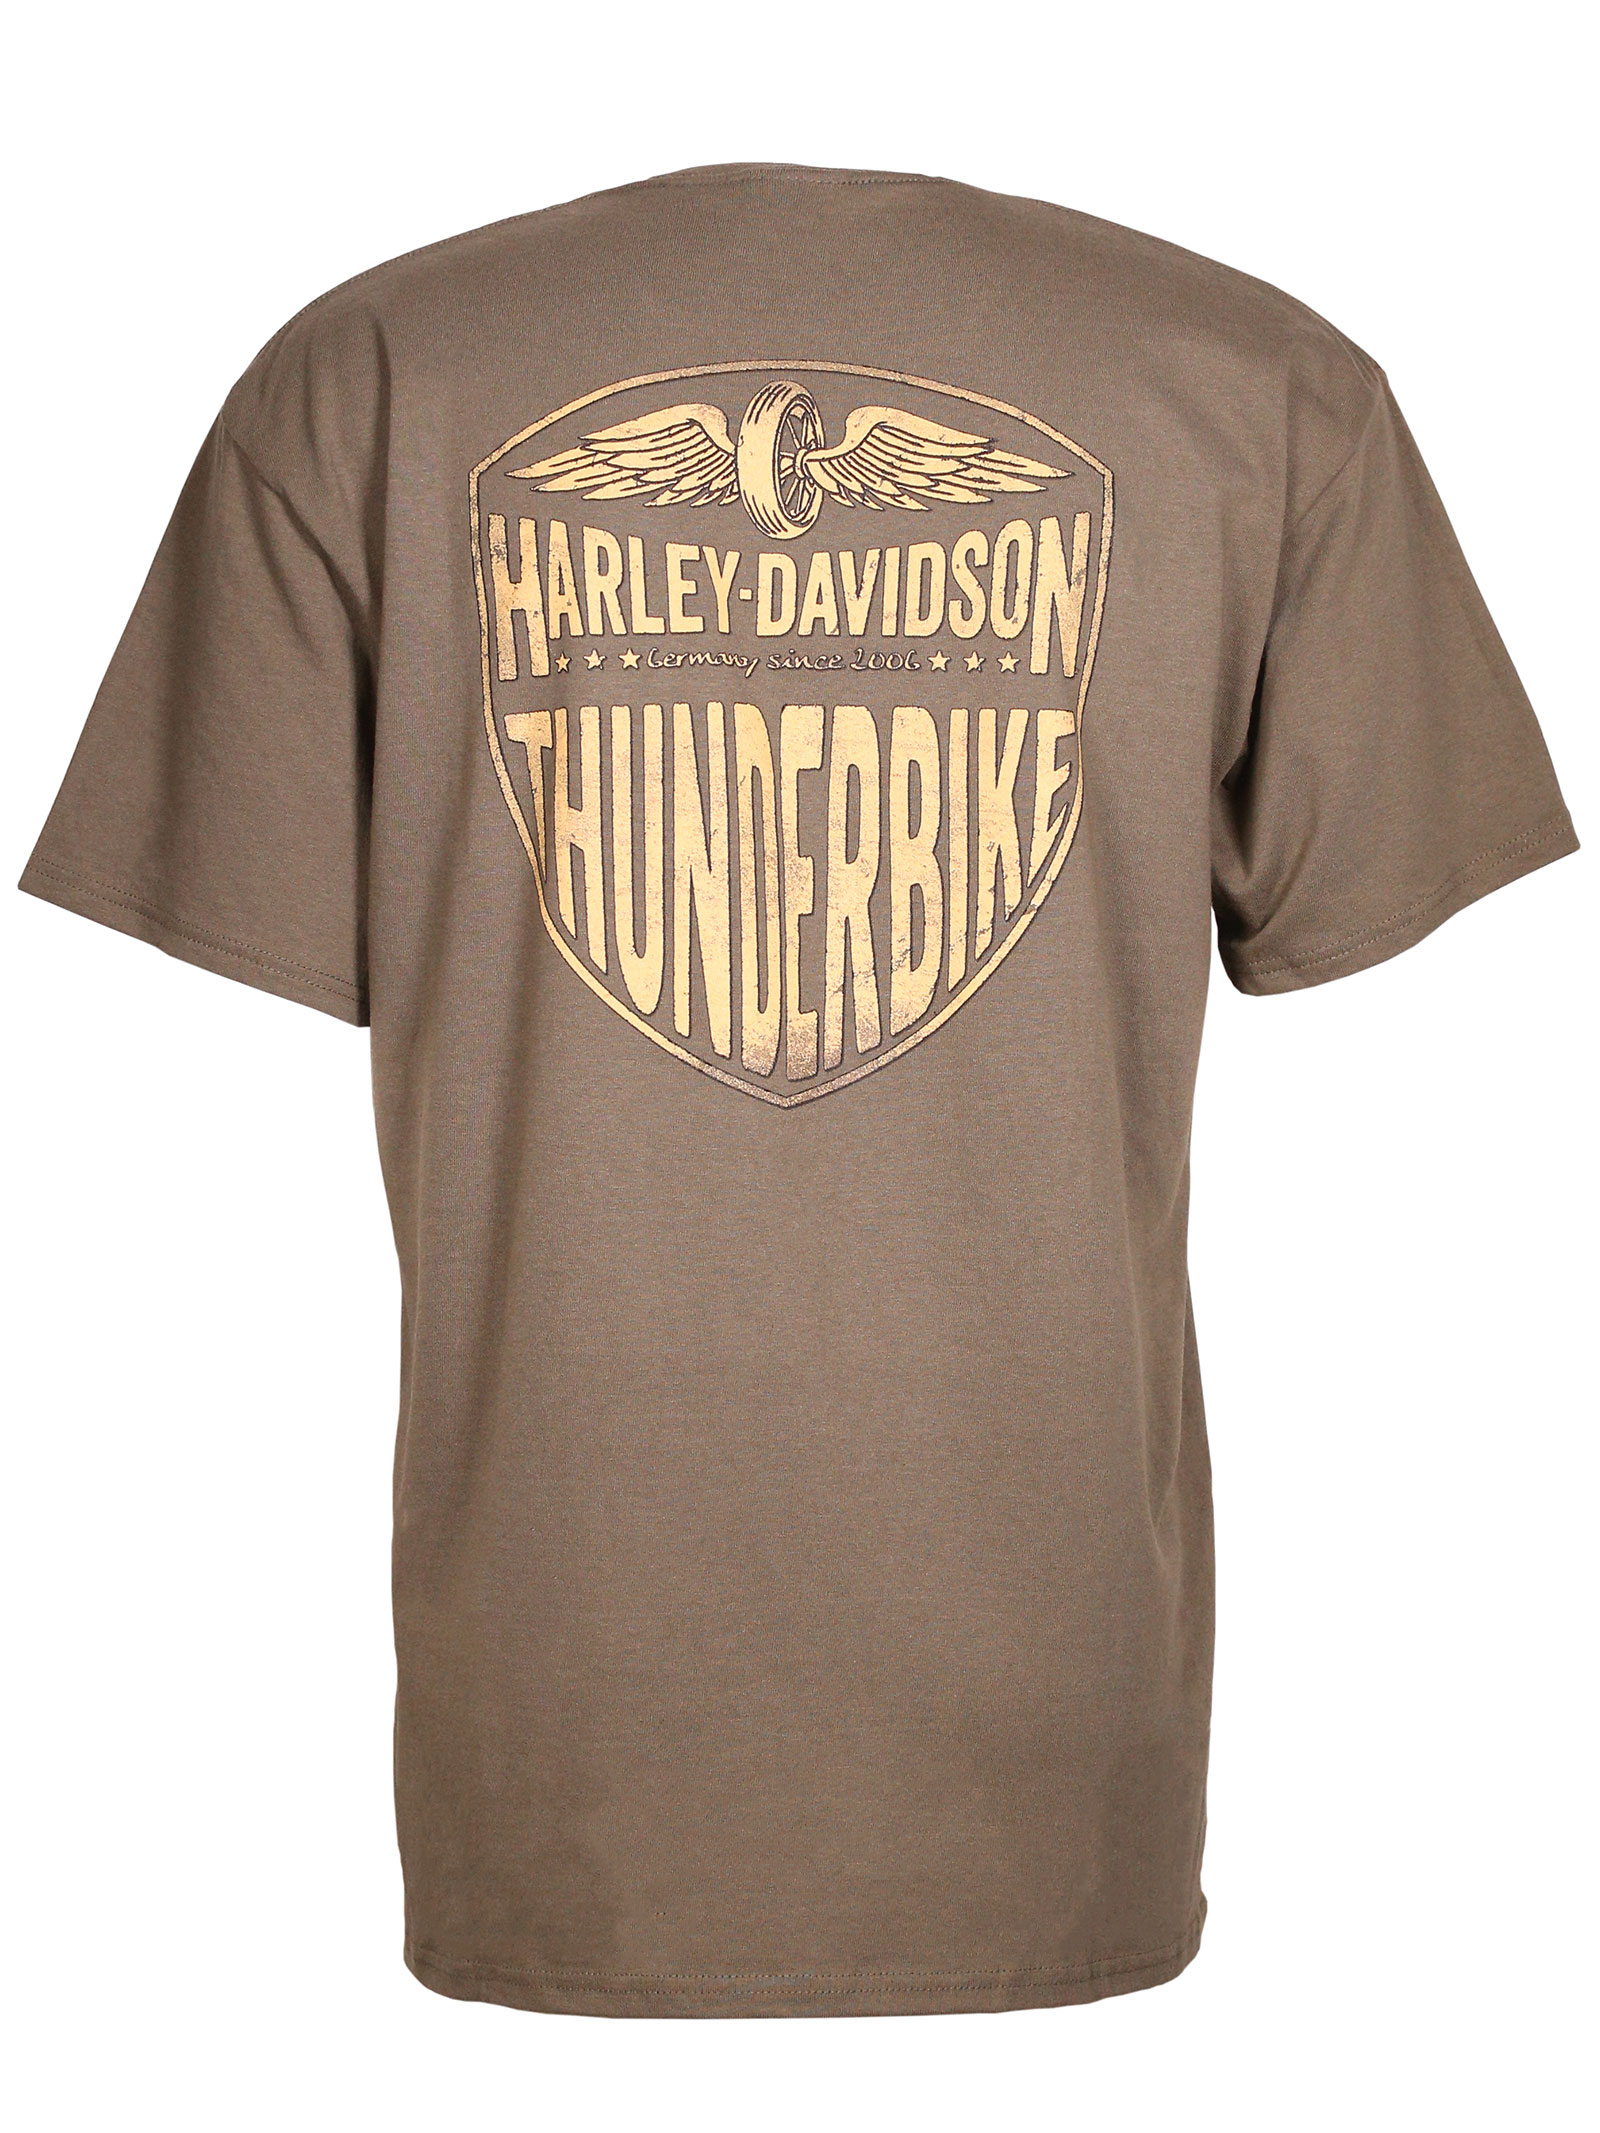 harley davidson t shirt engine energy at thunderbike shop. Black Bedroom Furniture Sets. Home Design Ideas